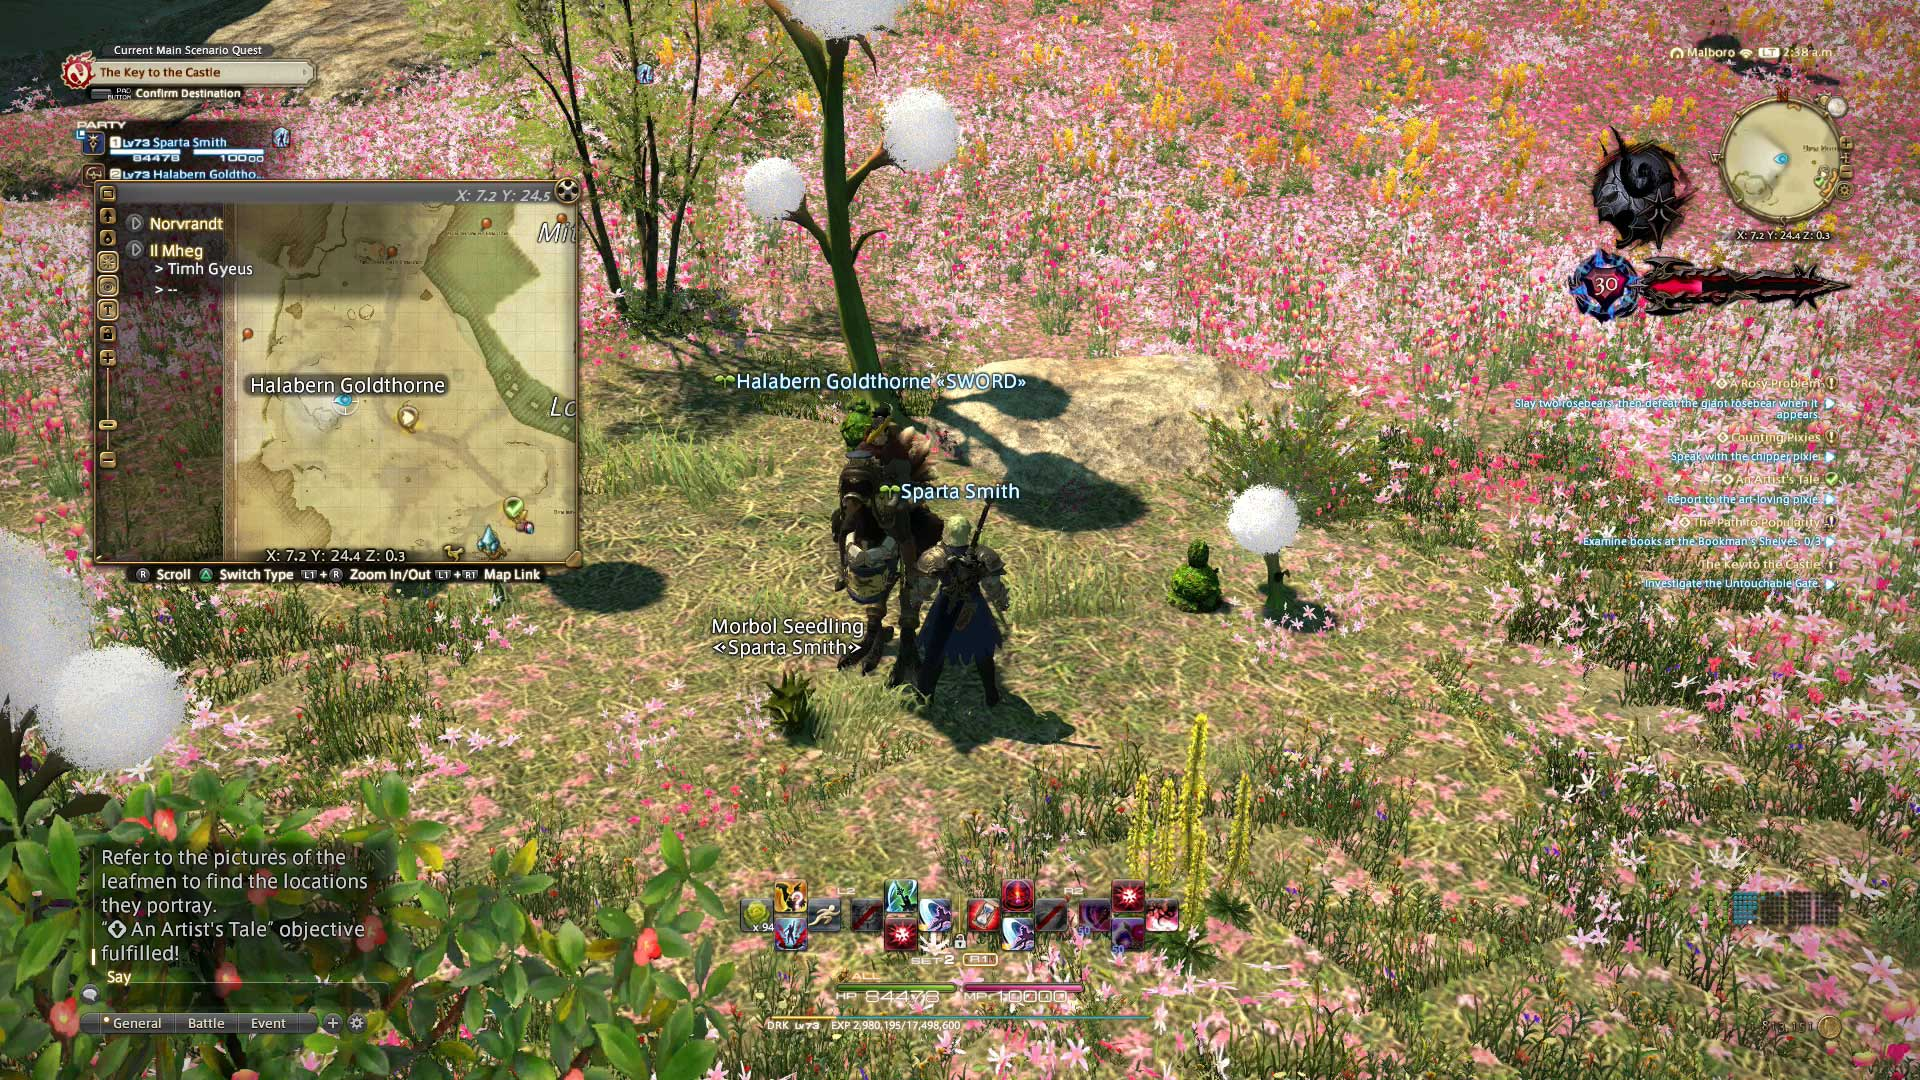 Final Fantasy XIV An Artists Tale Quest Guide – Terry Paton